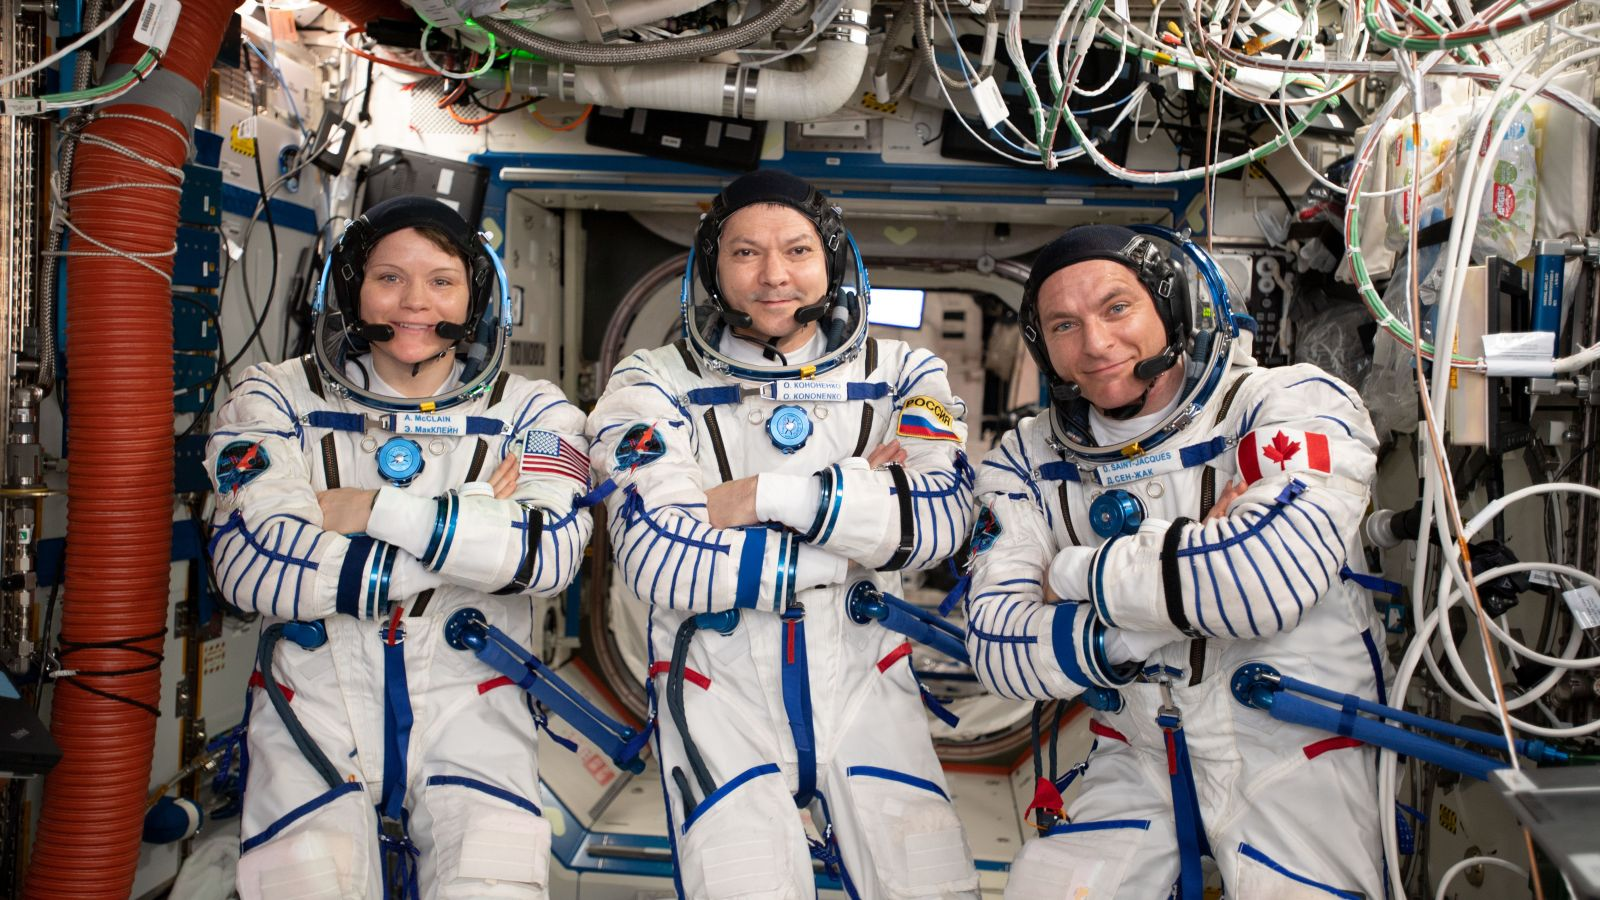 NASA's Anne McClain, left, Russia's Oleg Kononenko, center, and Canadian Space Agency astronaut David Saint-Jacques in their Sokol launch and entry suits aboard the ISS several days before their departure in Soyuz MS-11. Photo Credit: NASA